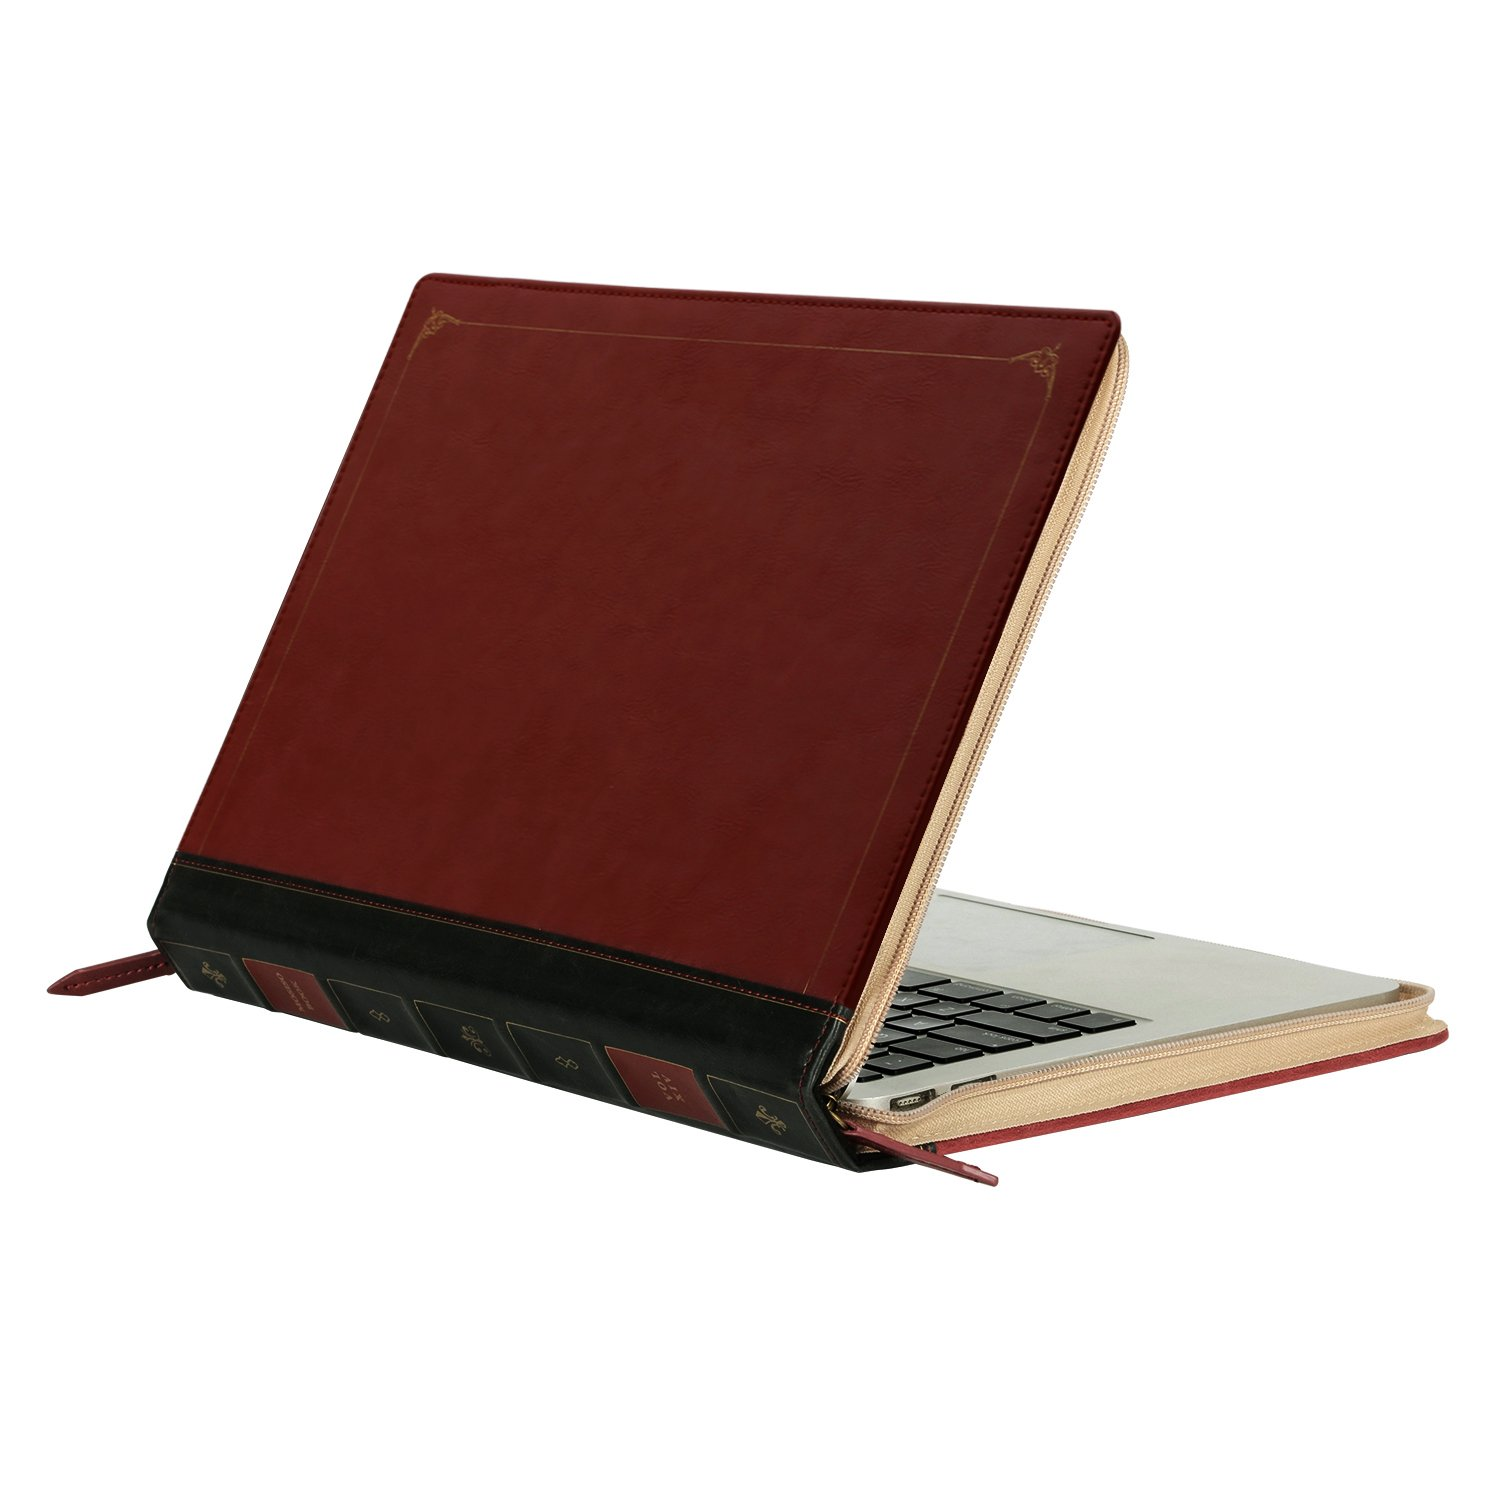 MOSISO PU Leather Zippered Case Only Compatible with Newest 2018 2017 2016 MacBook Pro 15 Inch with Touch Bar A1990 / A1707, Vintage Classic Premium Book Sleeve Cover, Wine Red